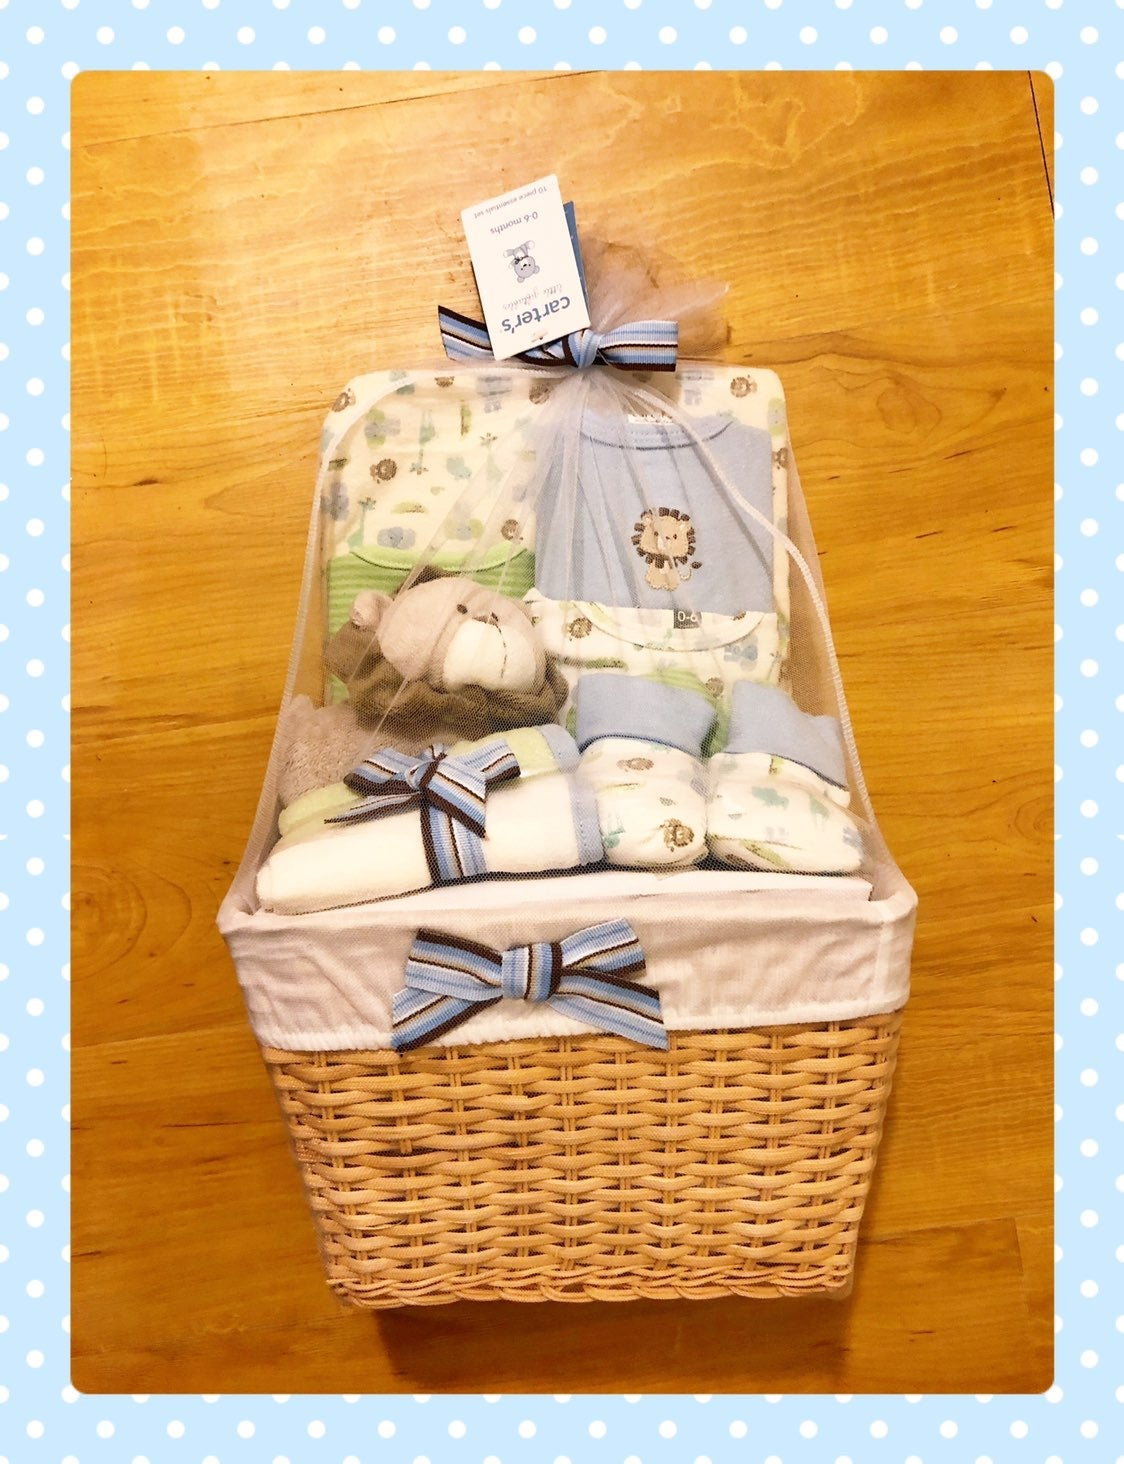 Carters Gift Basket 0-6 months